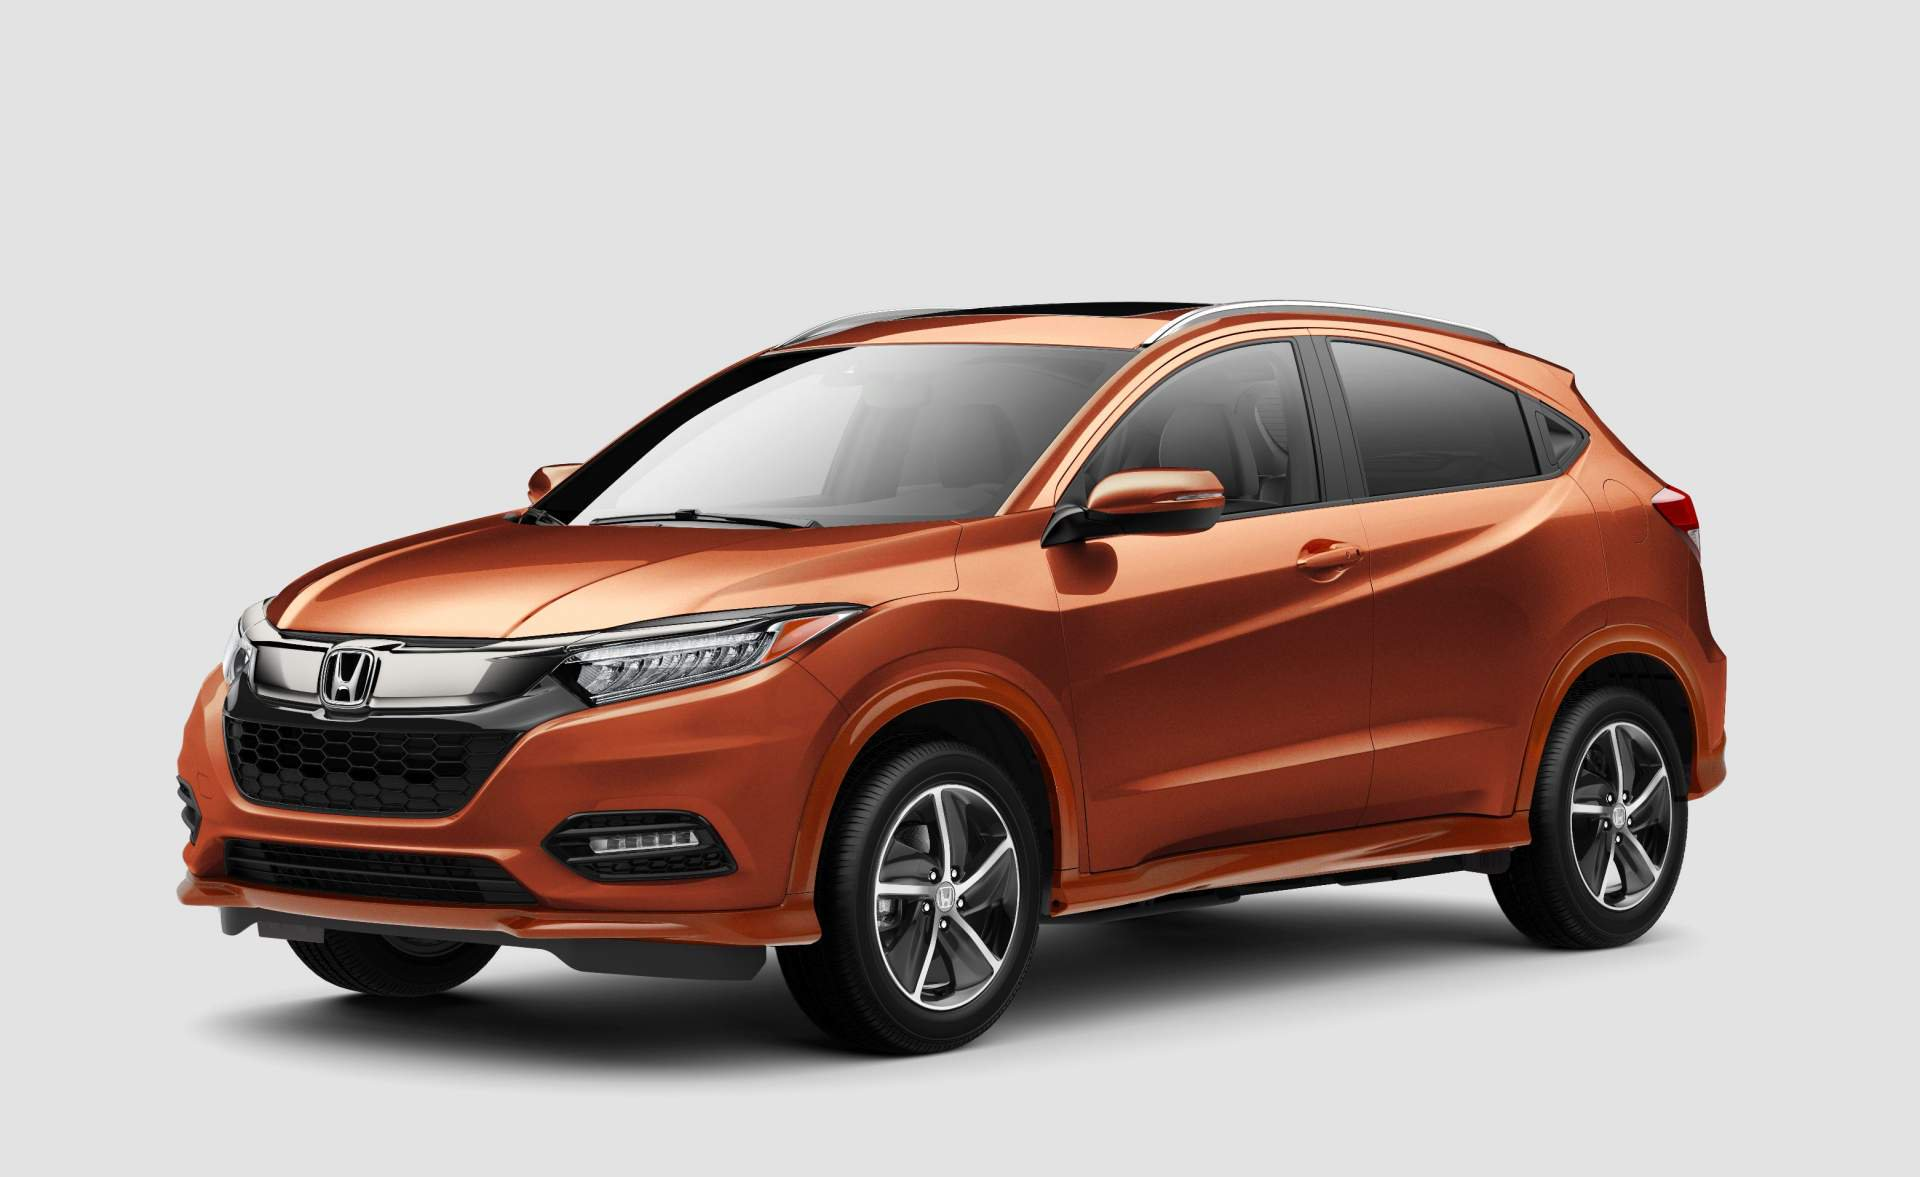 2019 Honda HR V Pricing Announced Loses Manual Gearbox